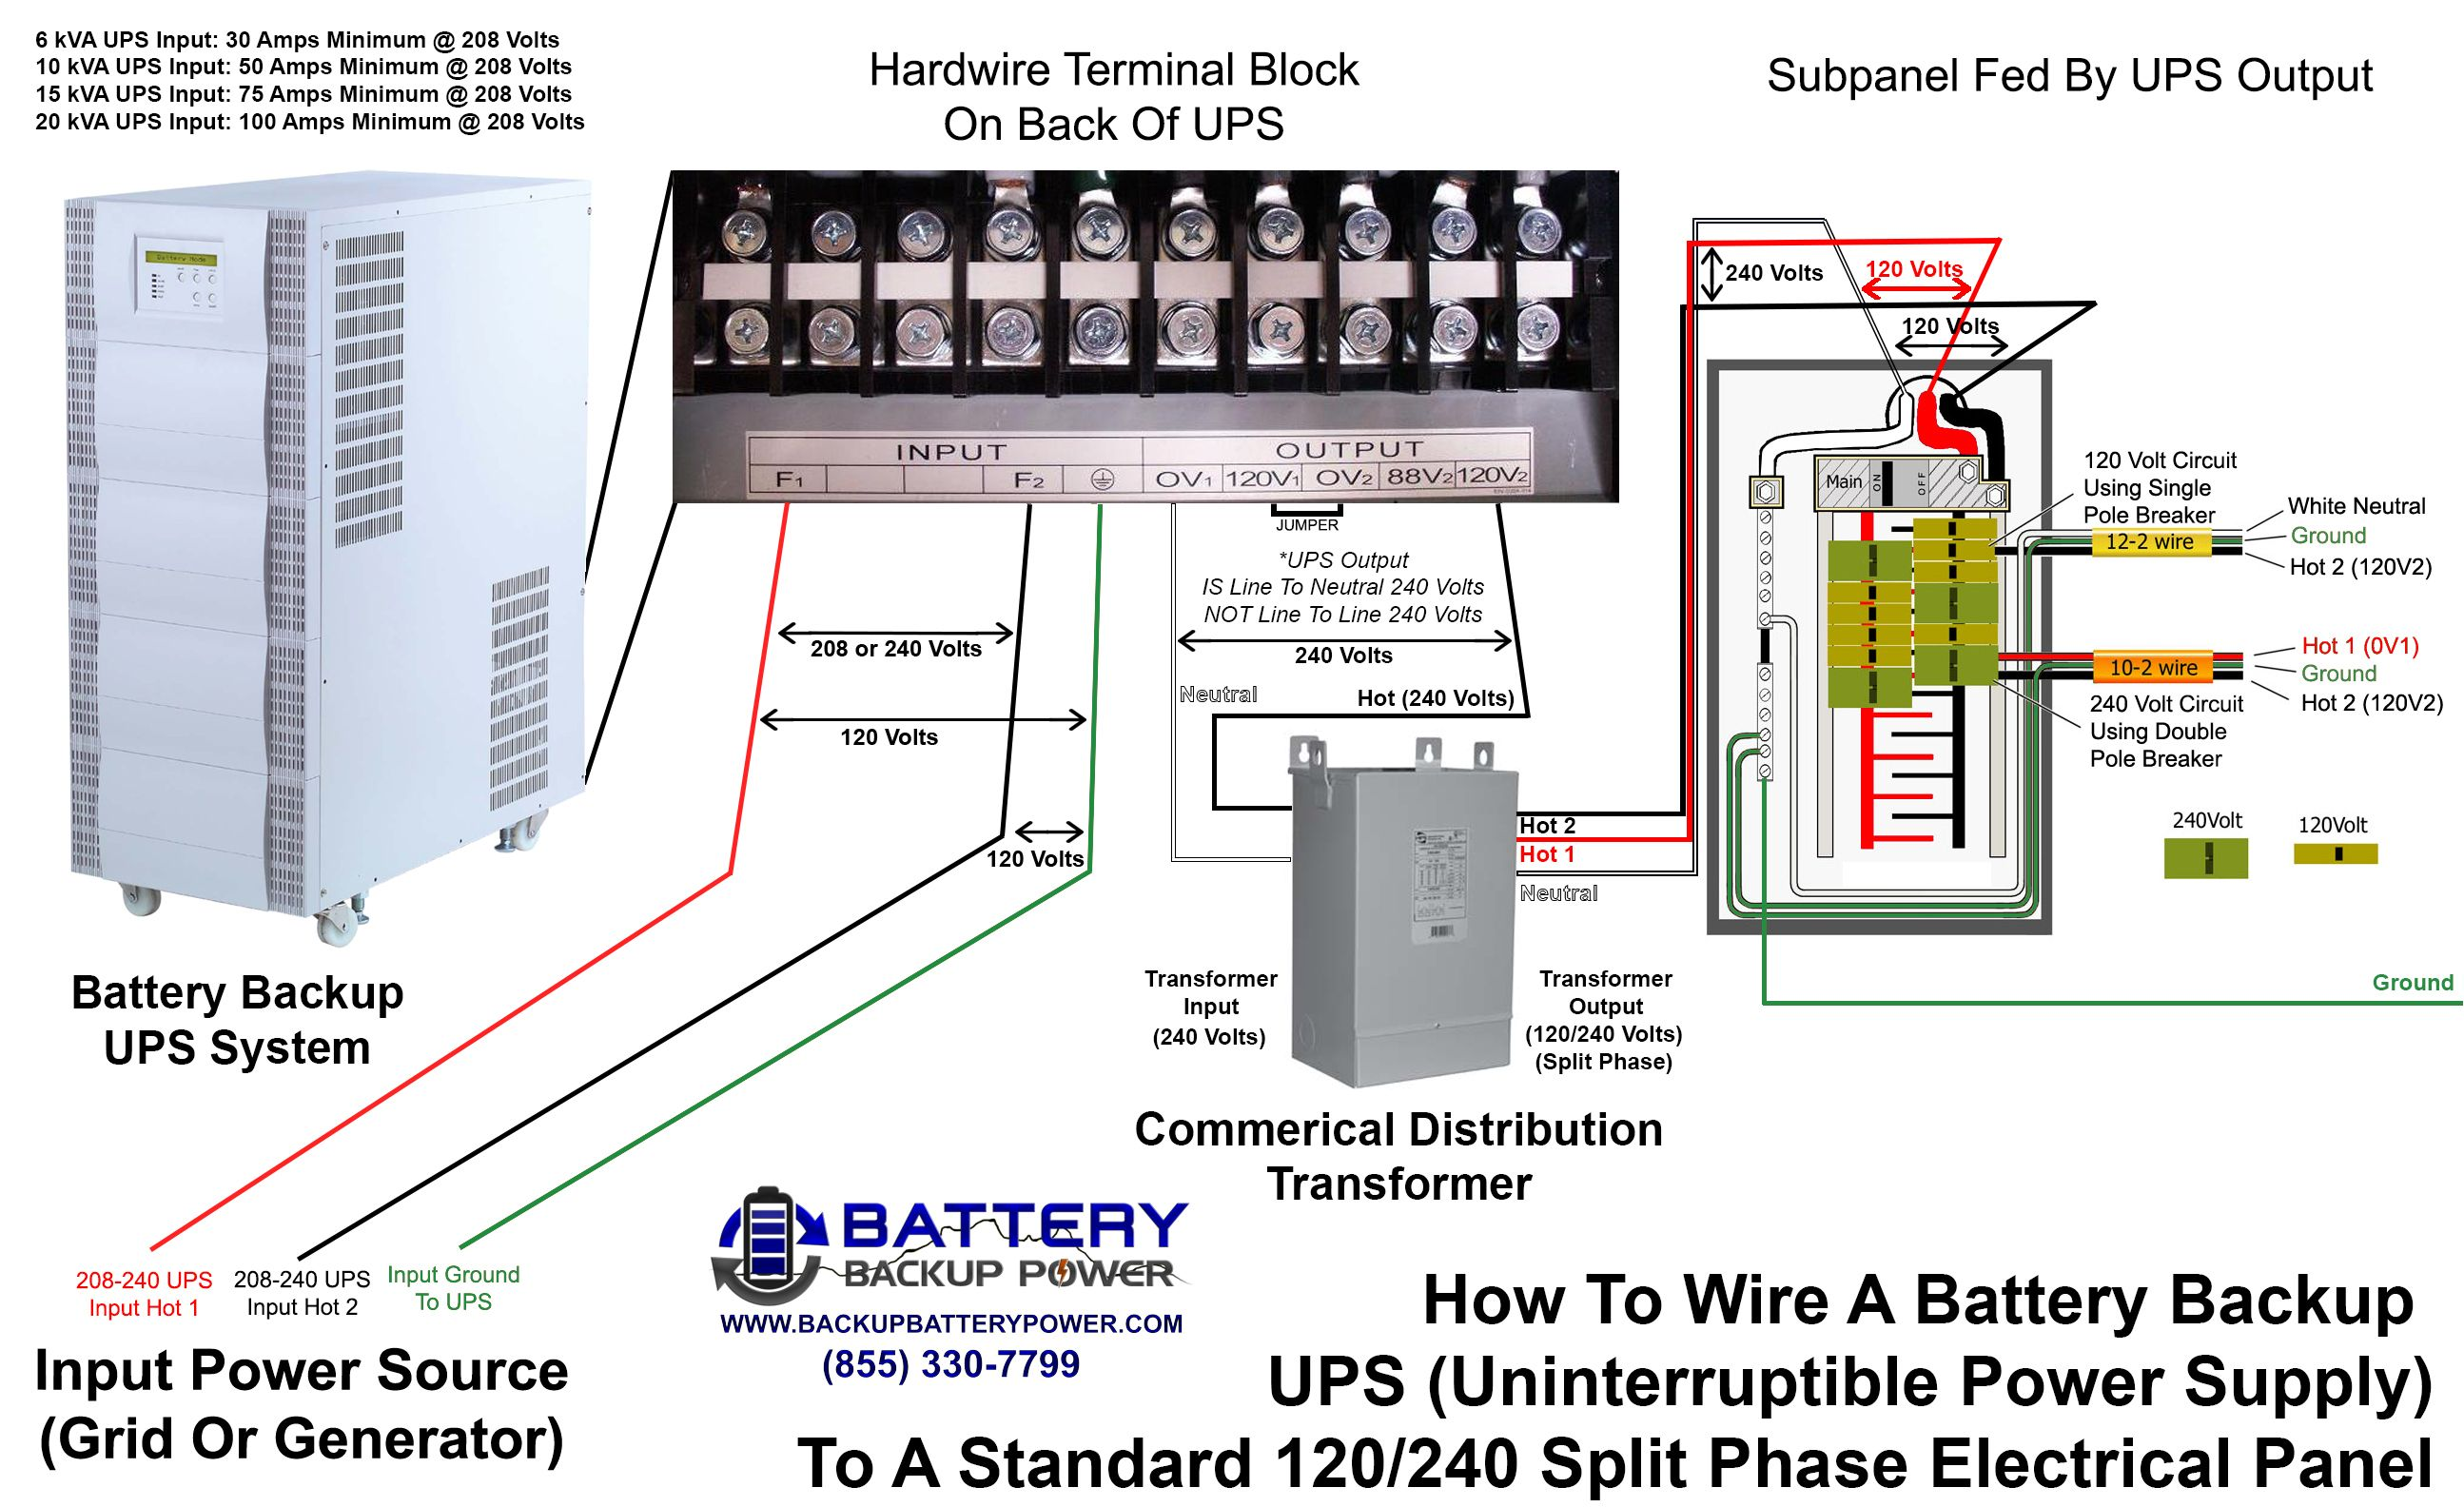 How To Wire A UPS To A Standard 120-240 Split Phase Electrical Panel Diagram